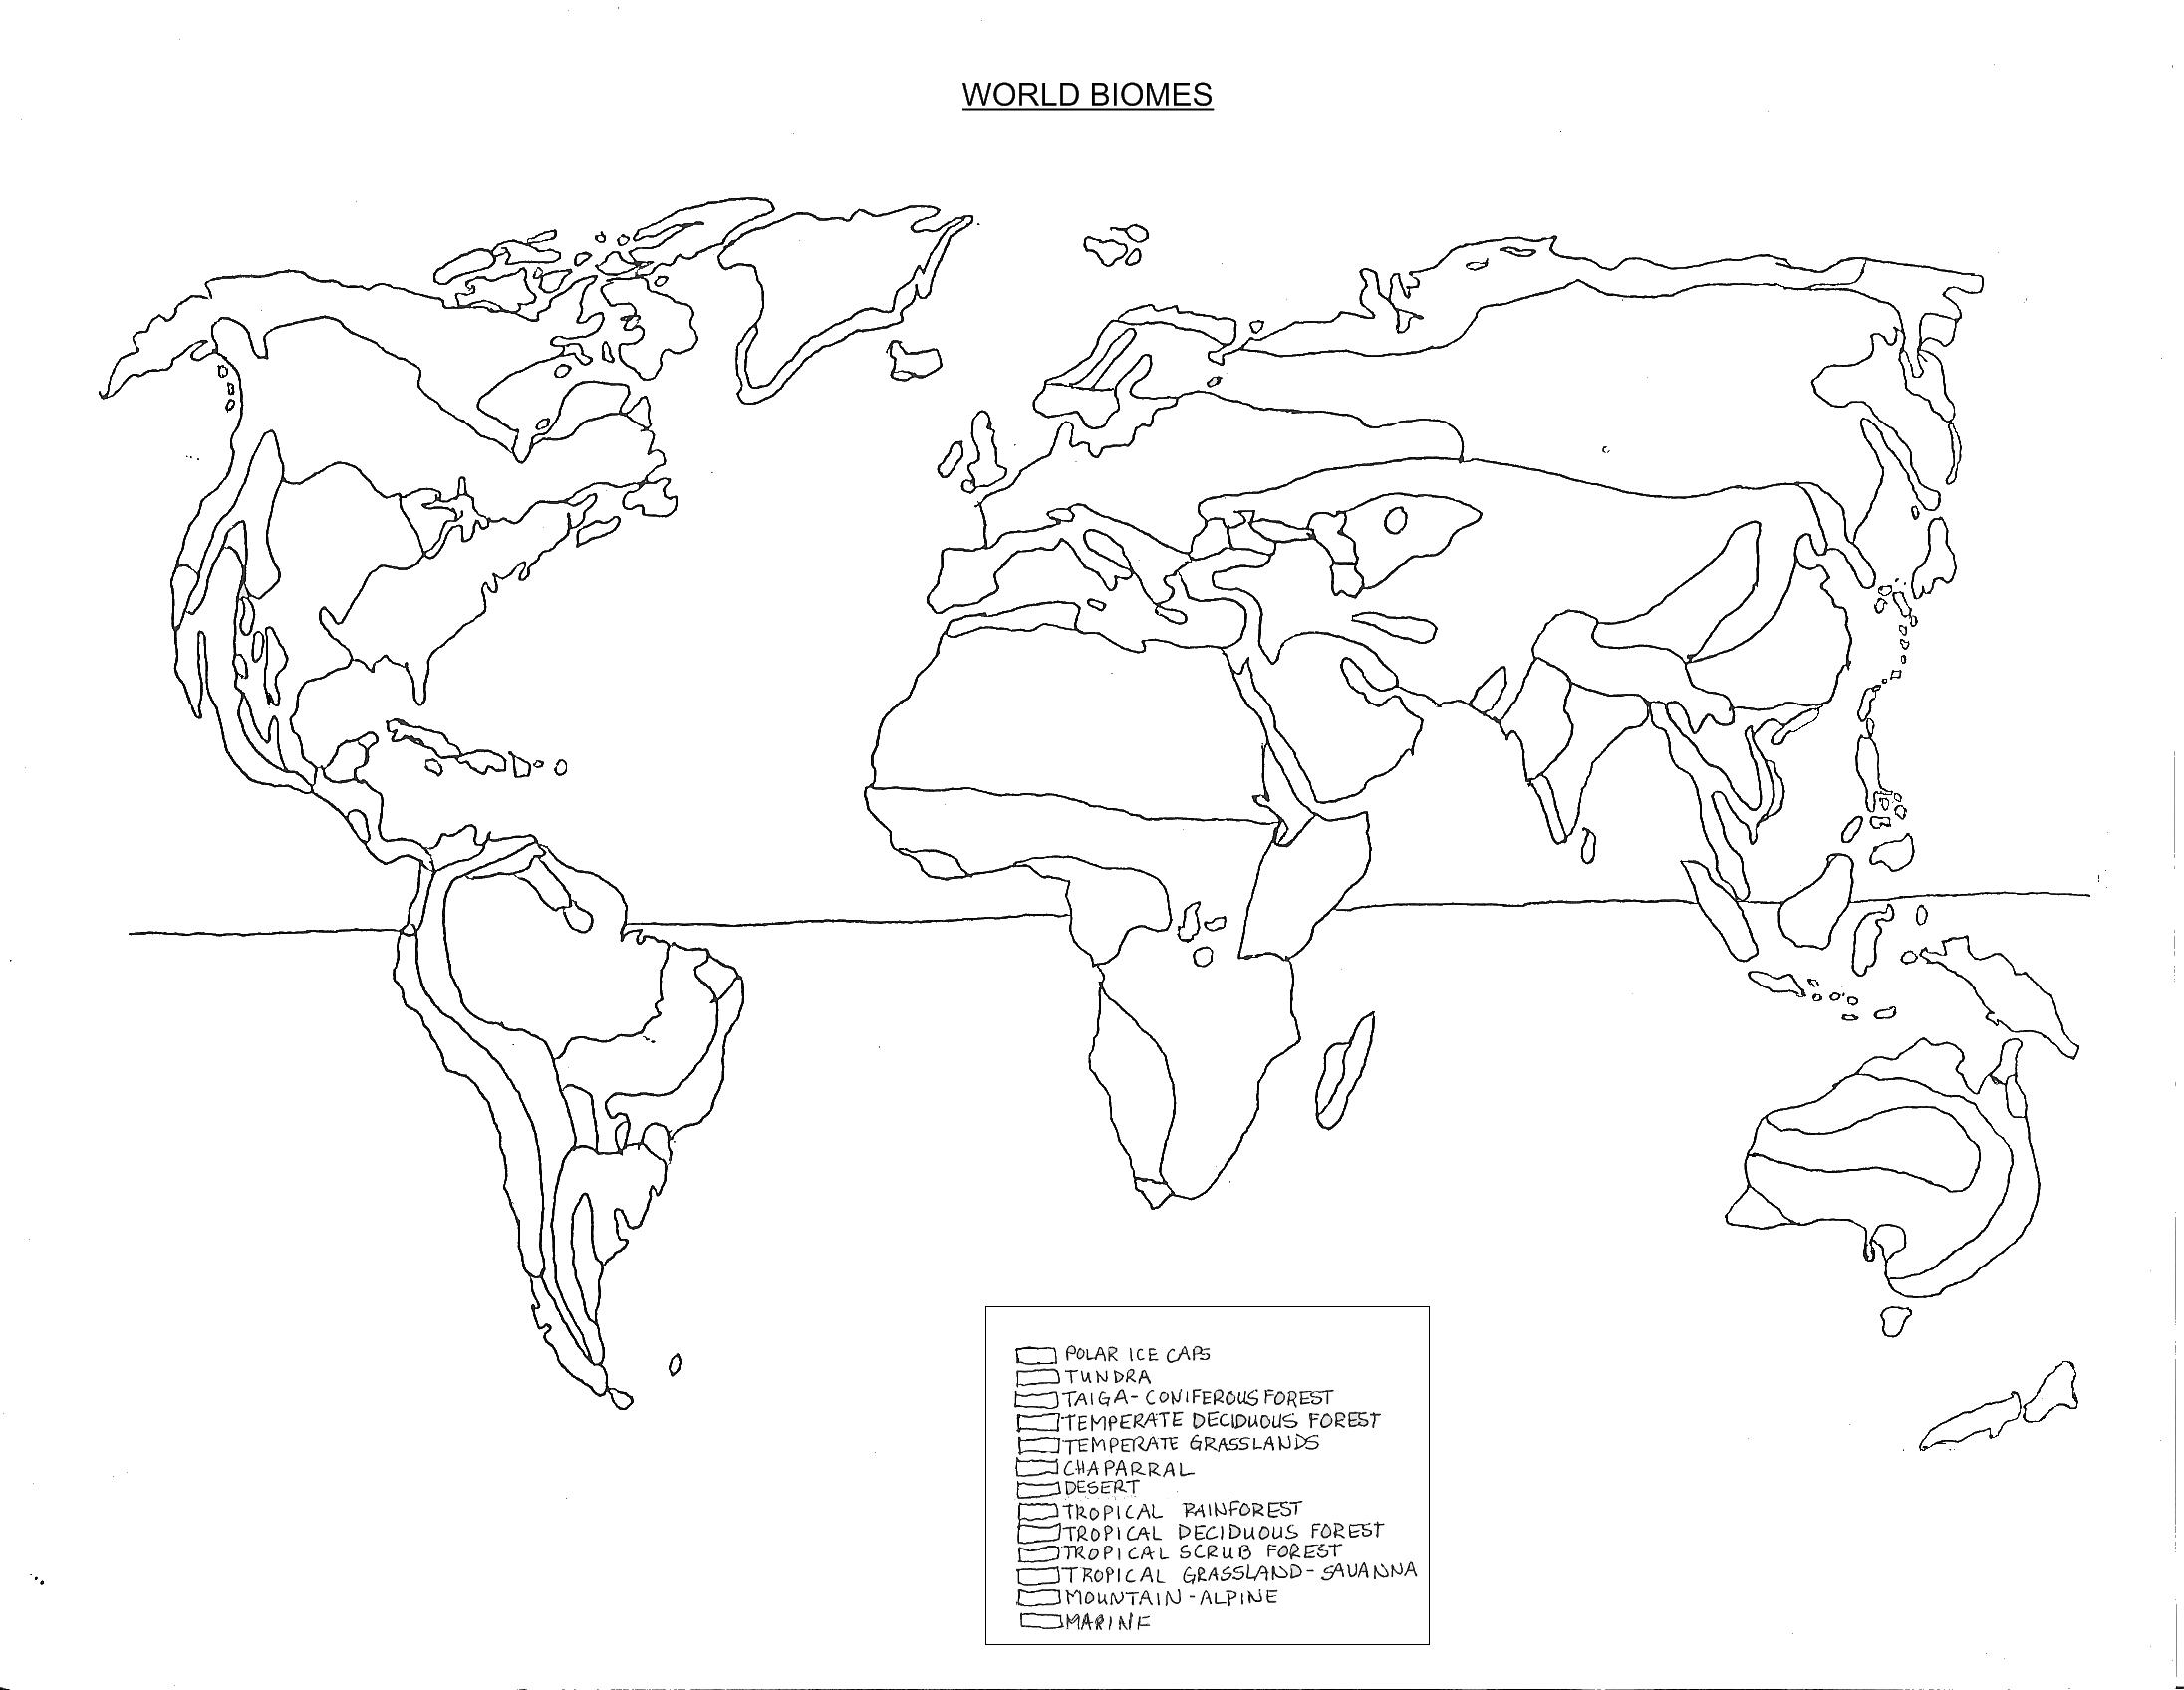 climate zone coloring map world climate zones for kids worksheets google search climate map coloring zone